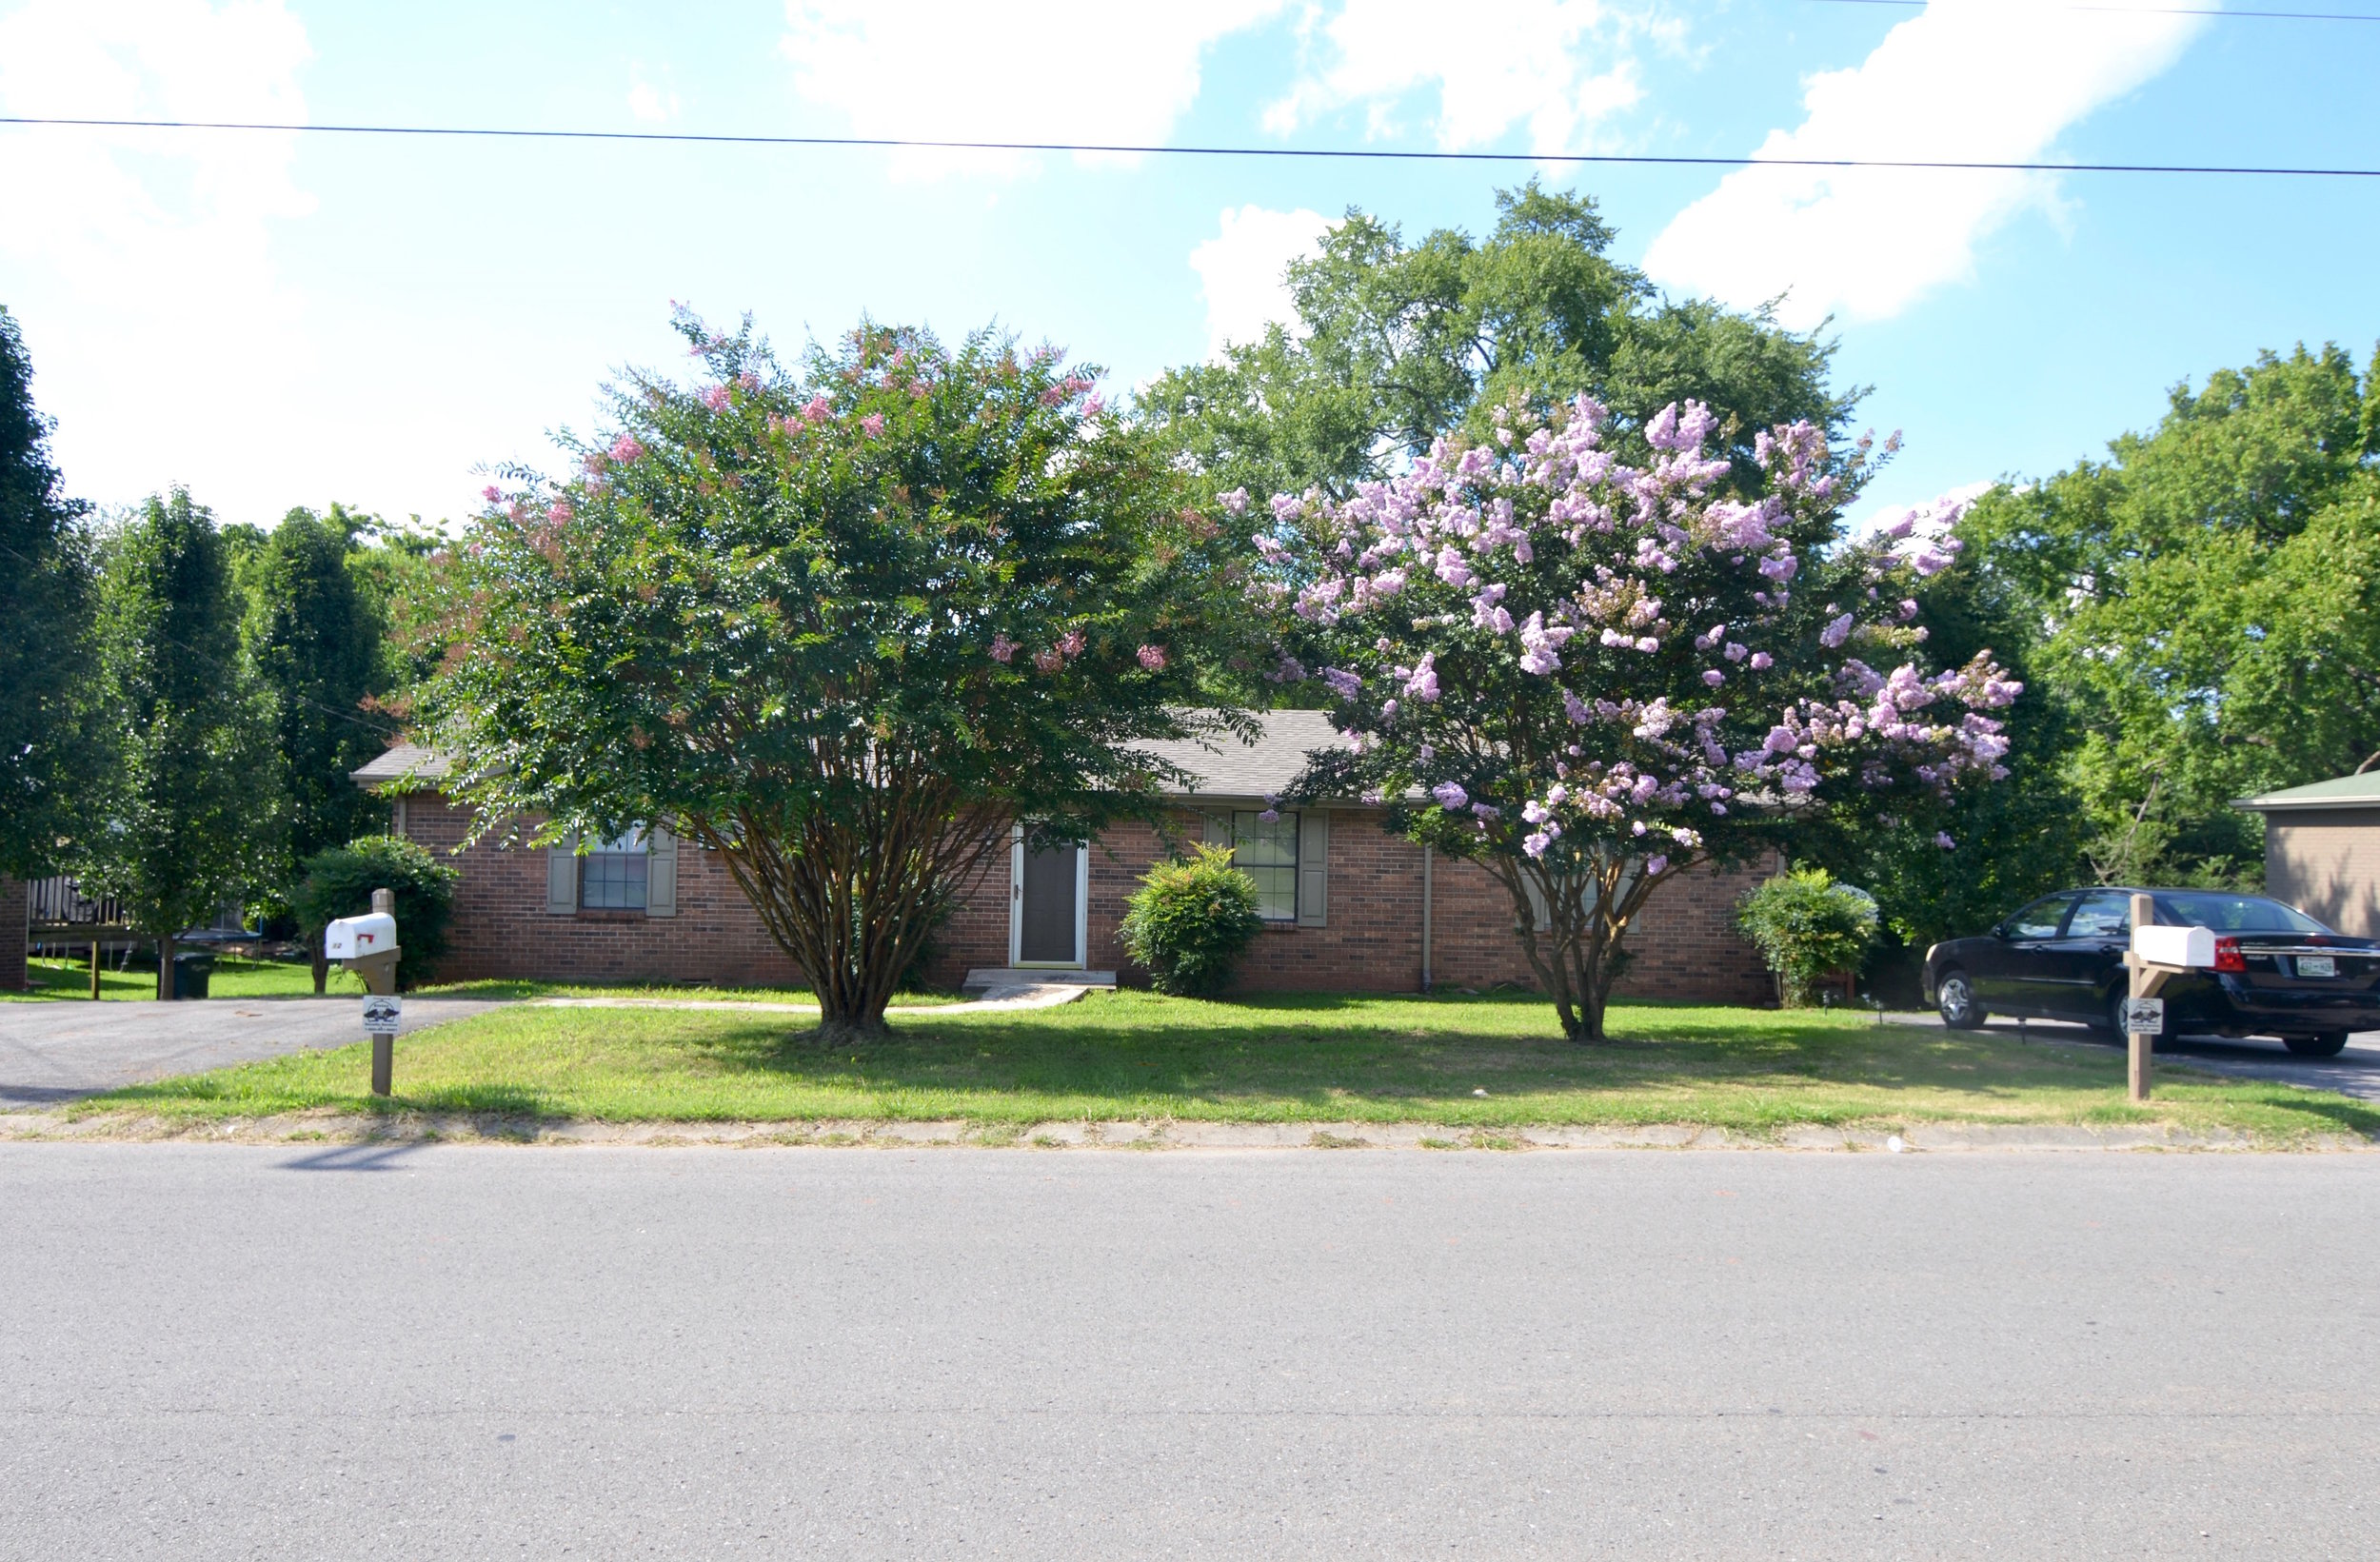 1205 /1207 RENTED  (100% Remodeled) MADISON: 1205/07 Sioux Terrace: Duplex: 2 Br 1 Ba